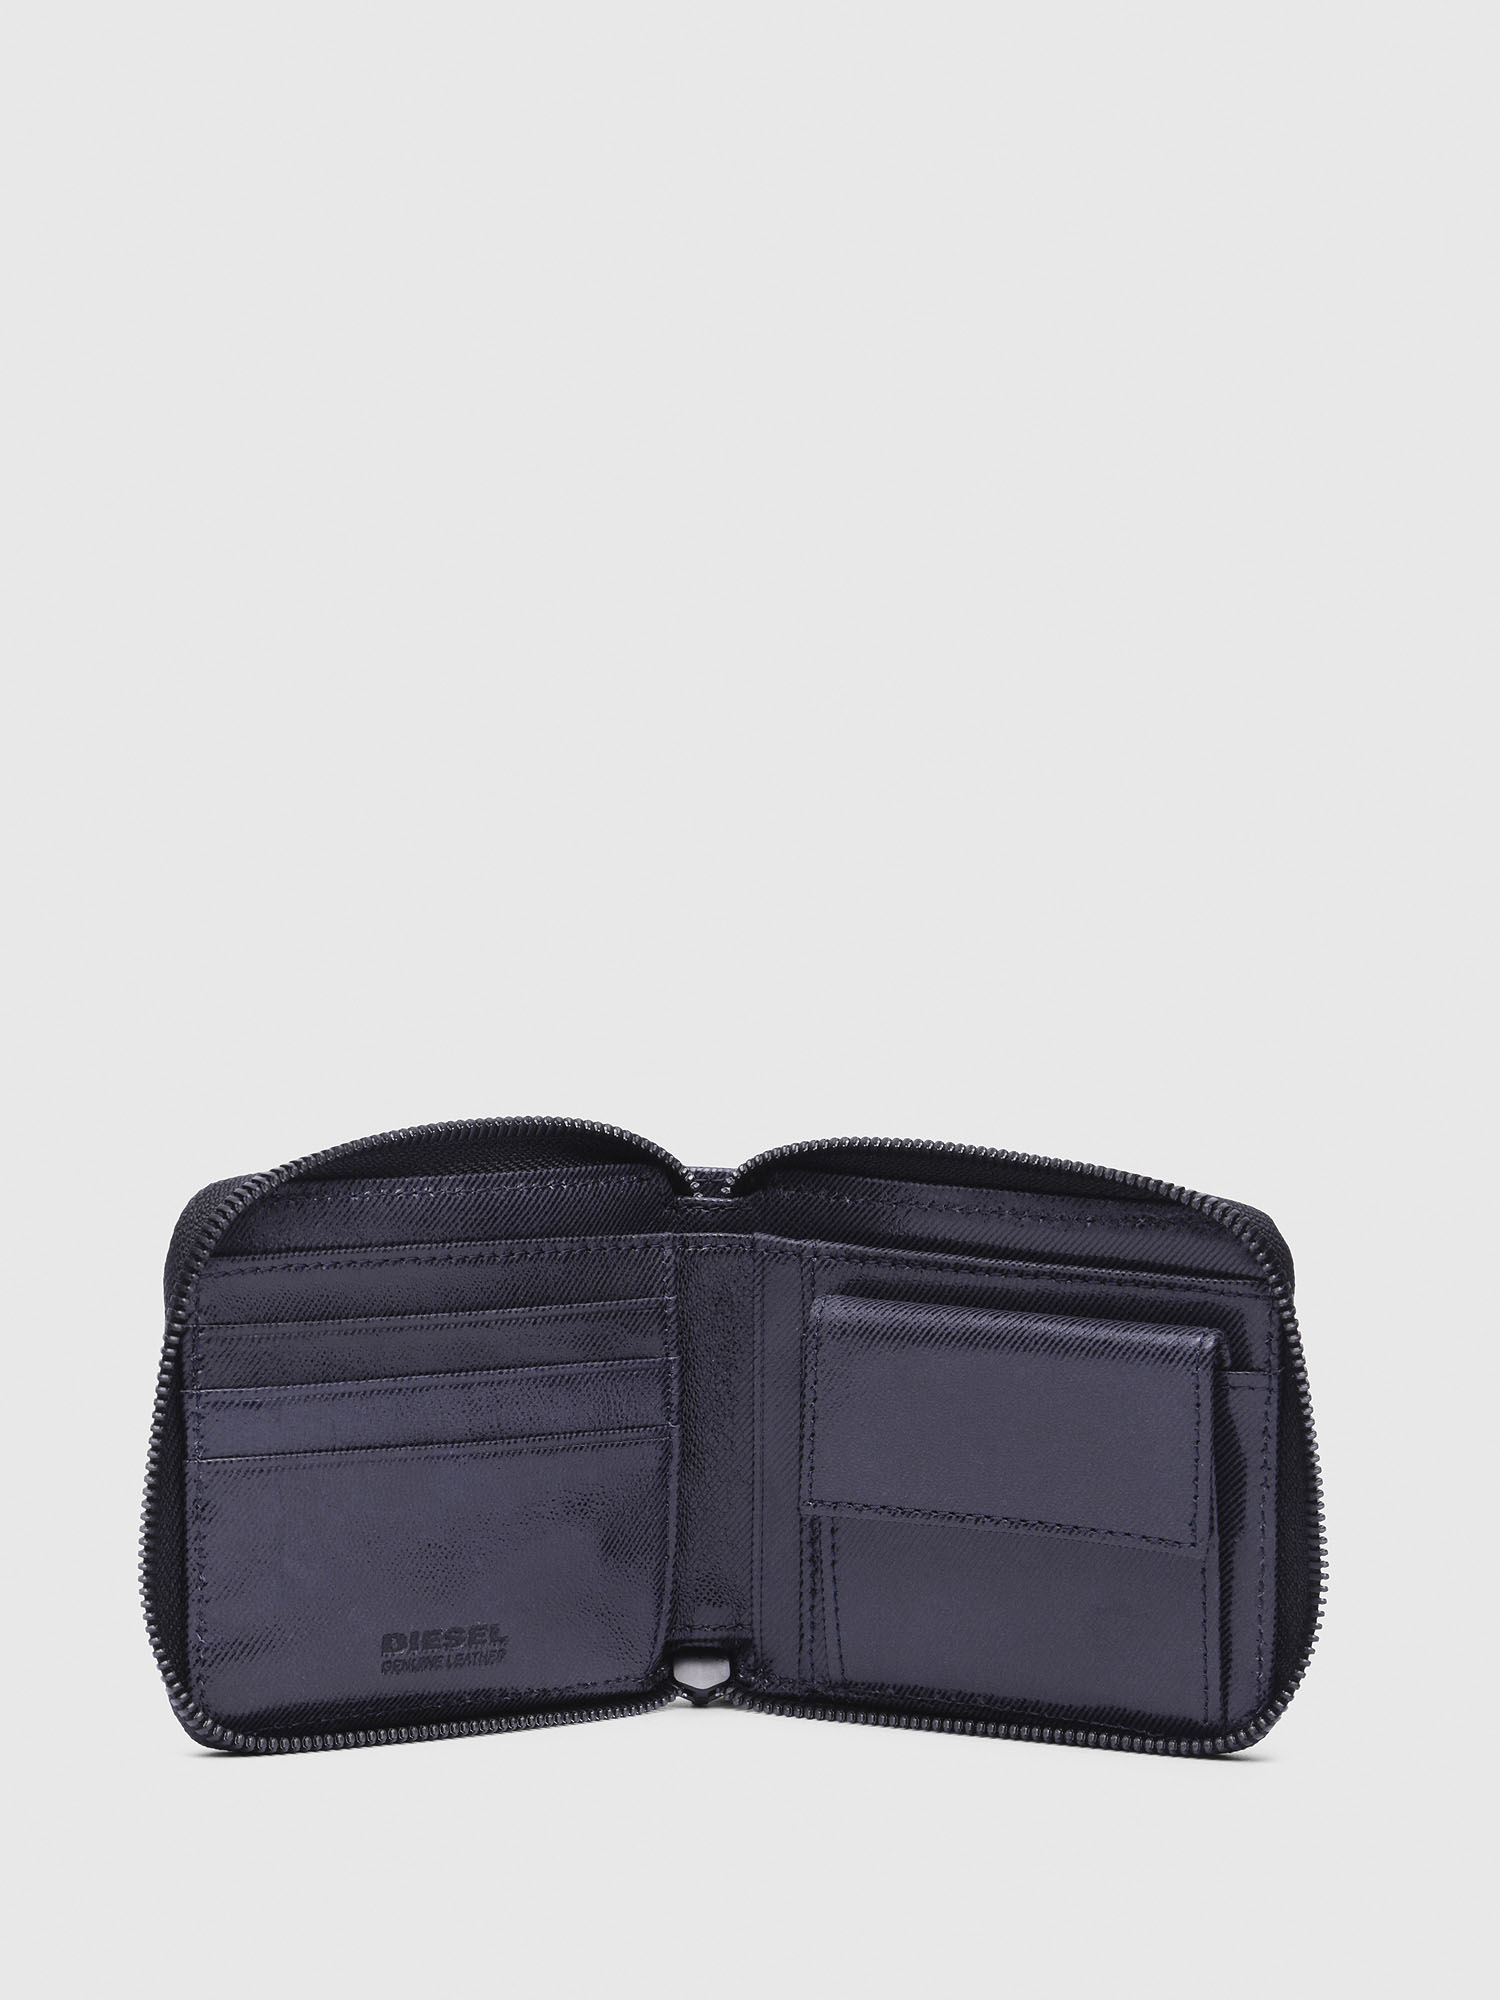 Diesel - ZIPPY HIRESH S WITH,  - Zip-Round Wallets - Image 4